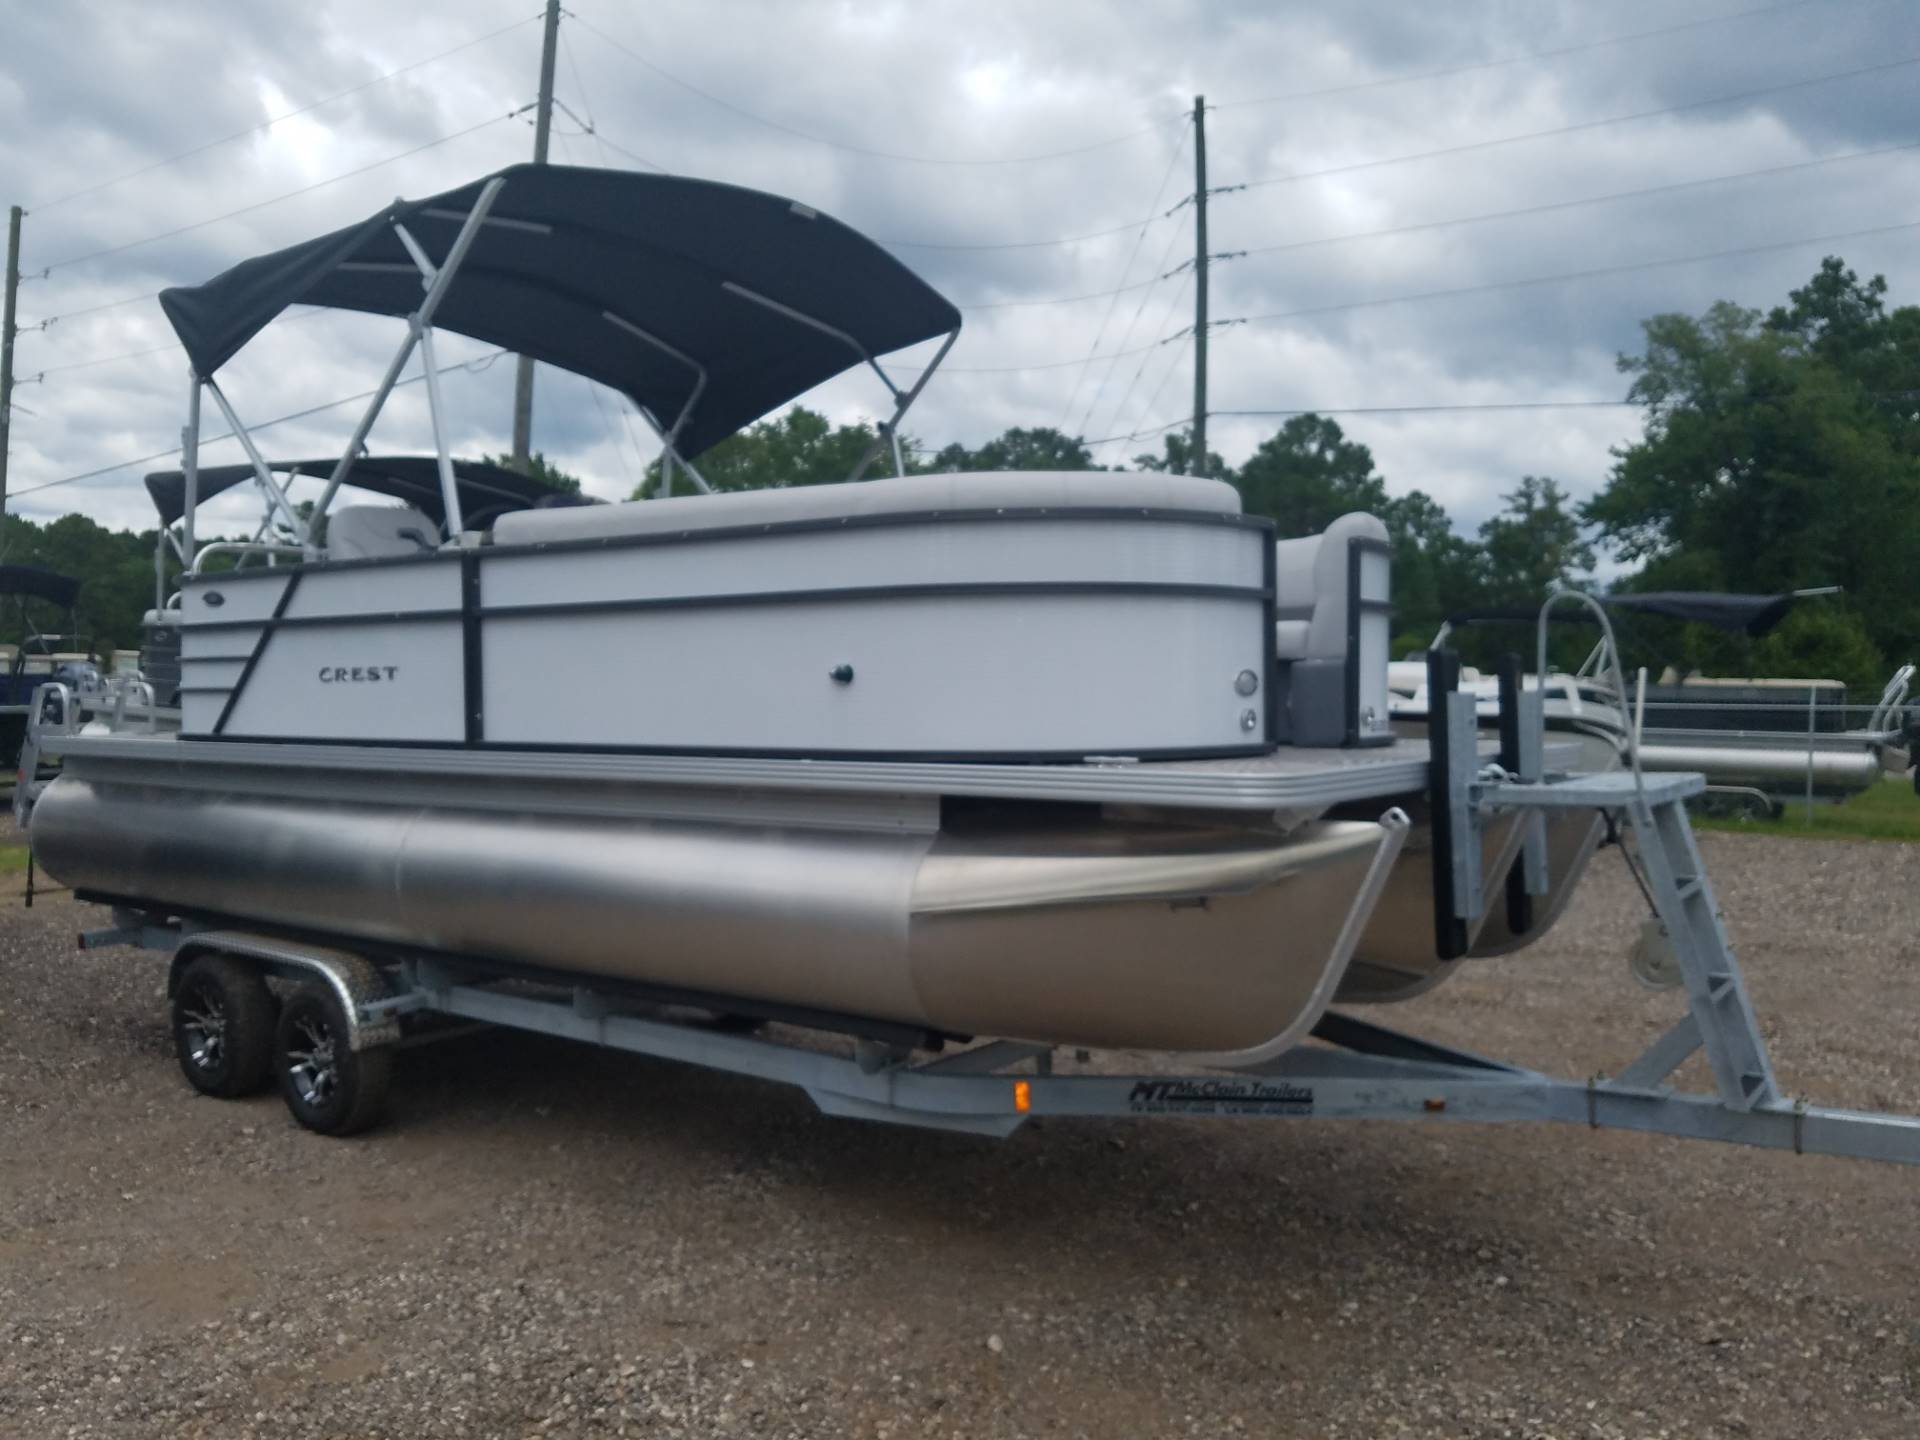 Crest Pontoon Boats I 220 SLC